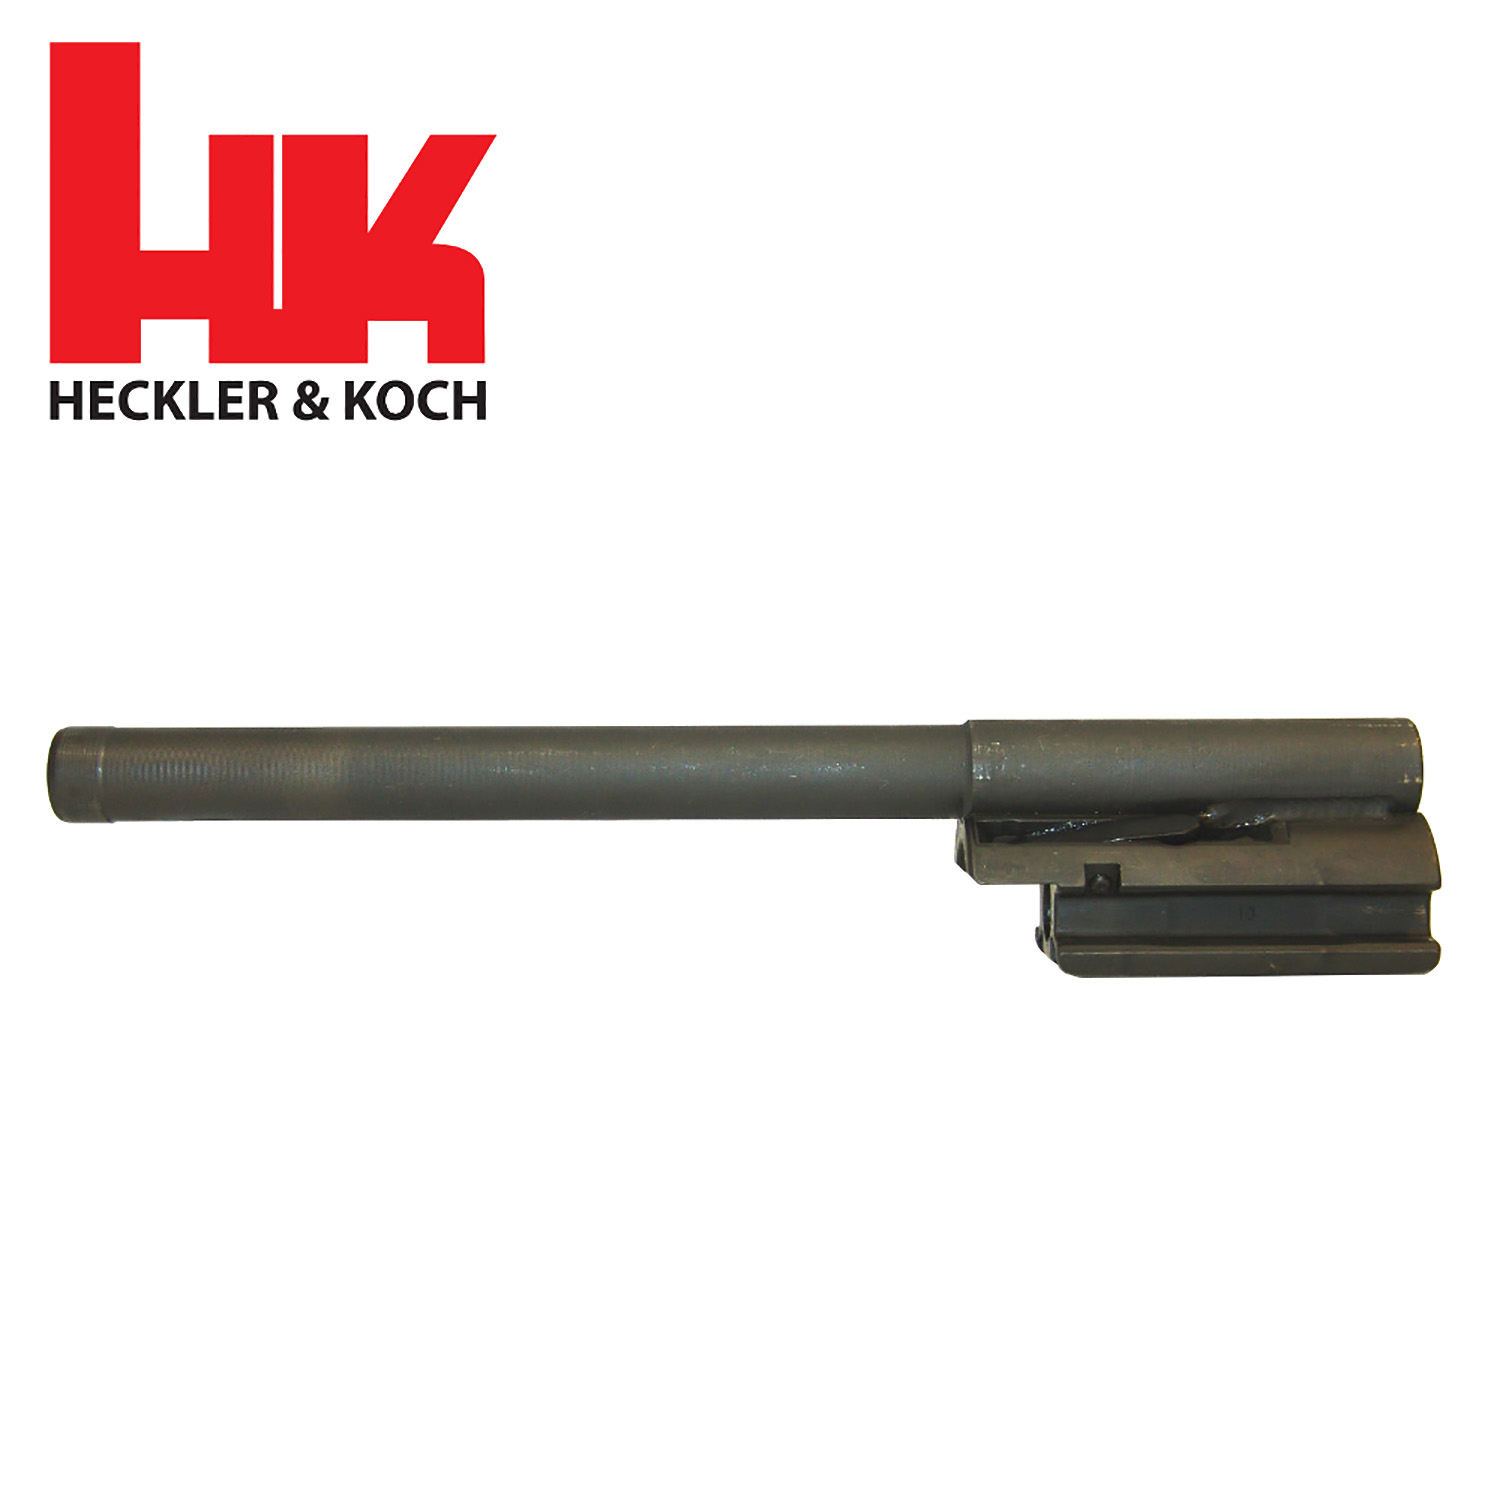 Heckler and Koch G3 Bolt Head and Carrier, Complete: Midwest Gun Works